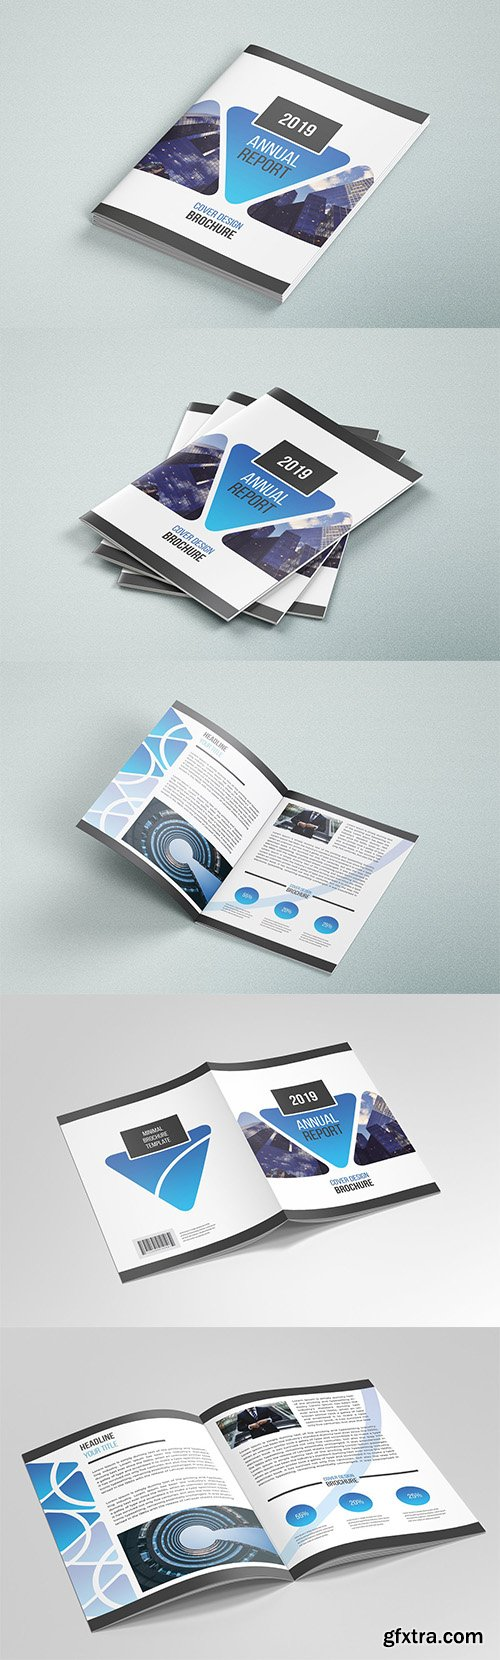 CreativeMarket - Business Brochure Template 04 3590222